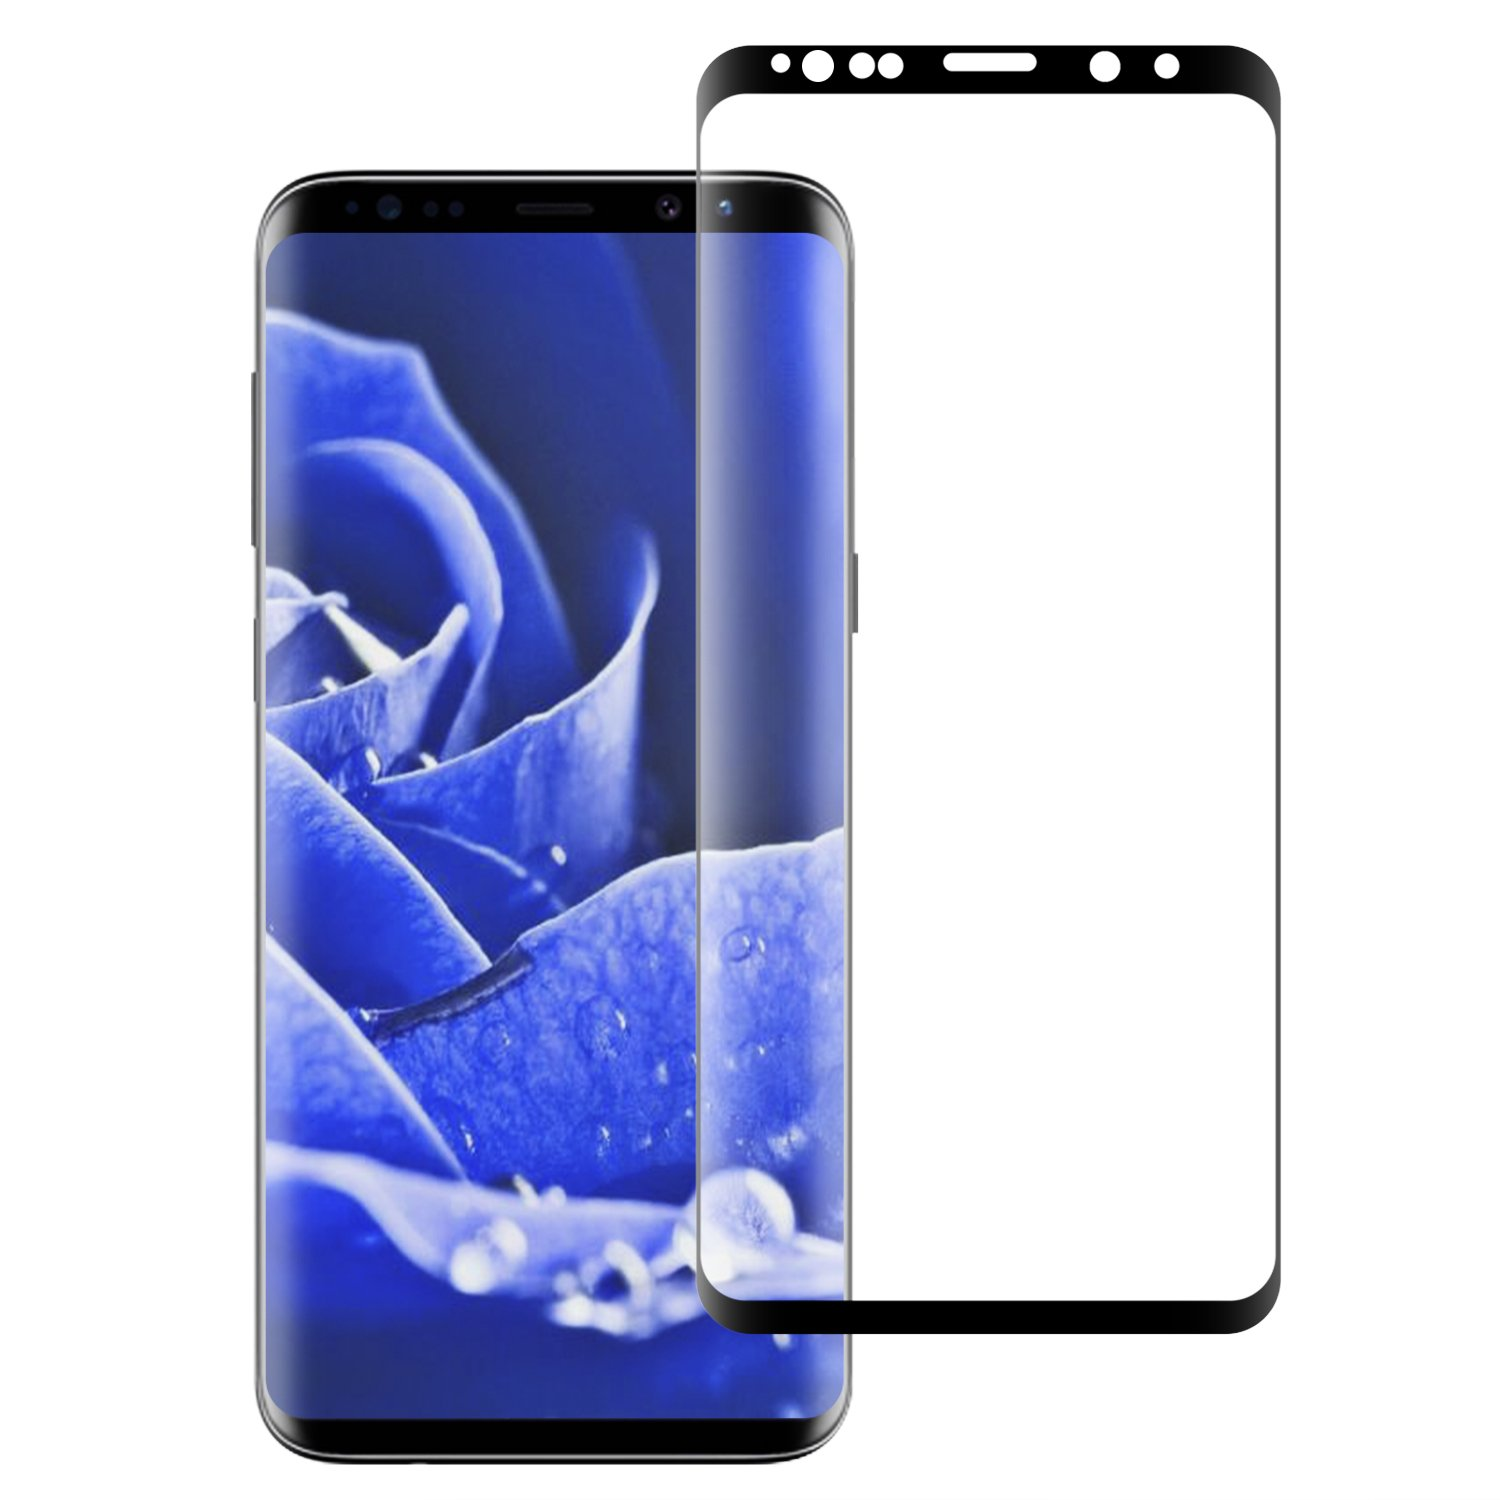 OFF Galaxy S9 Screen Protector 3D Tempered Glass Full Coverage High Definition Clear